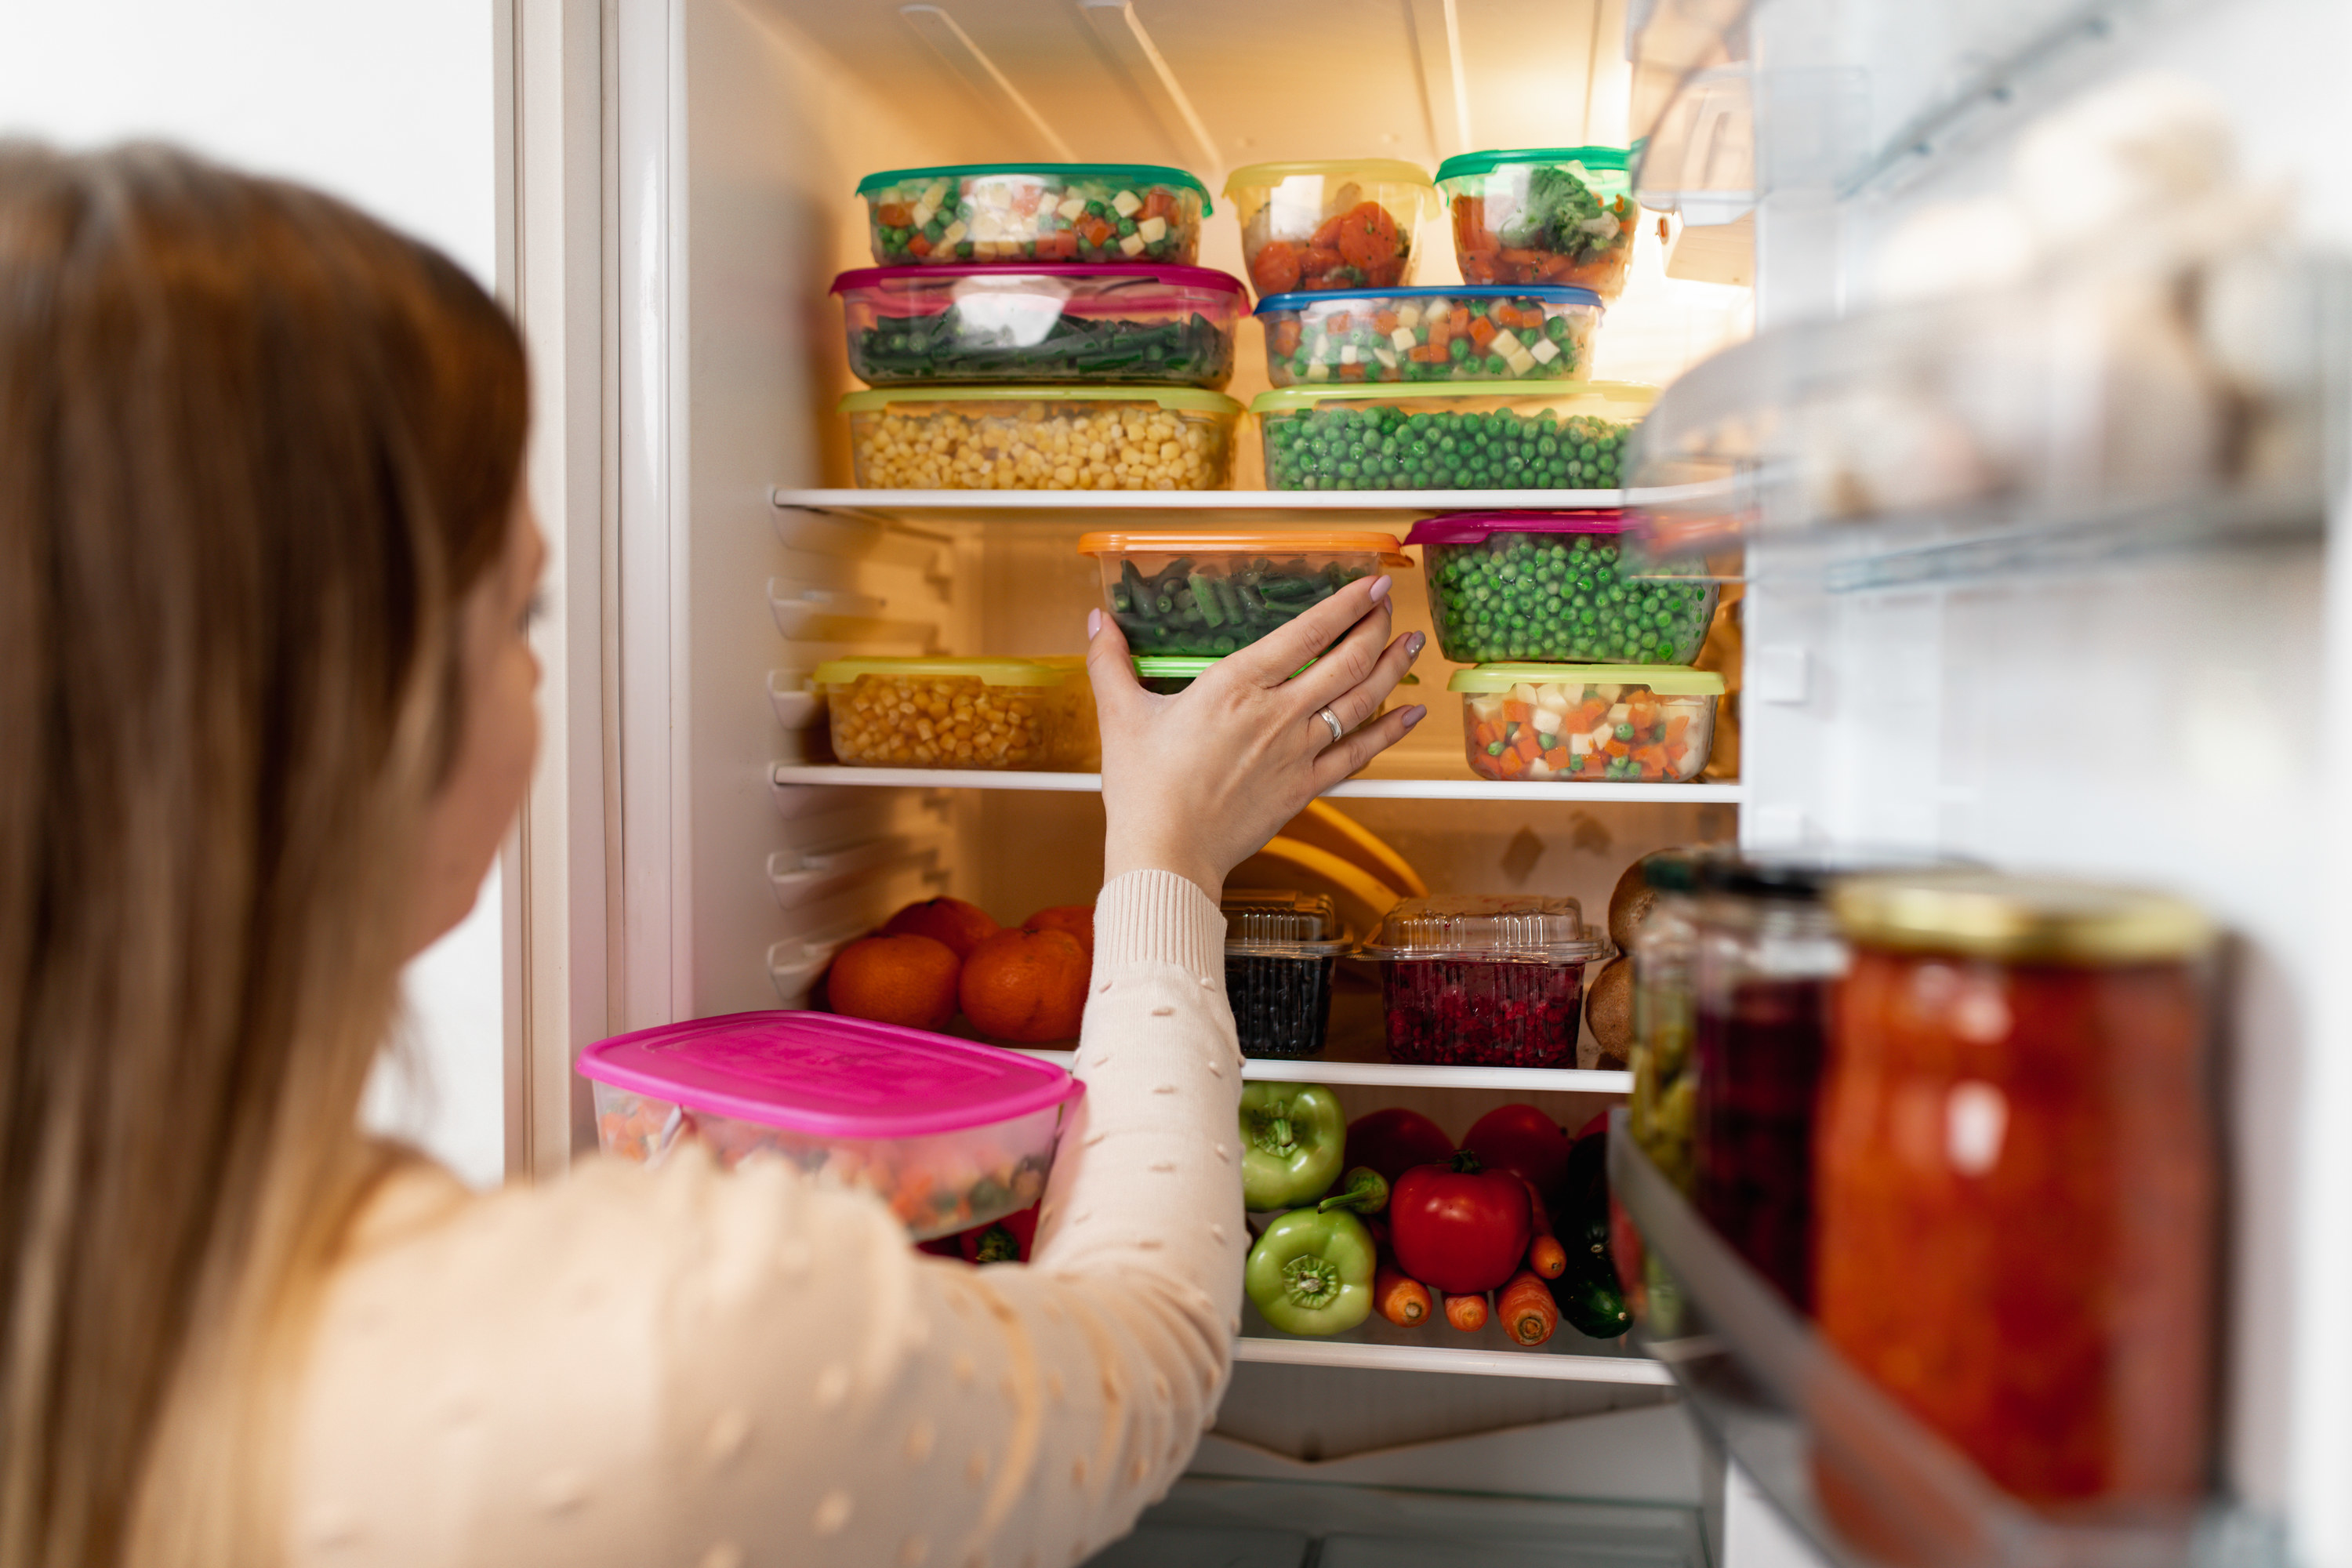 Close-up shot of woman putting a food container into the fridge.